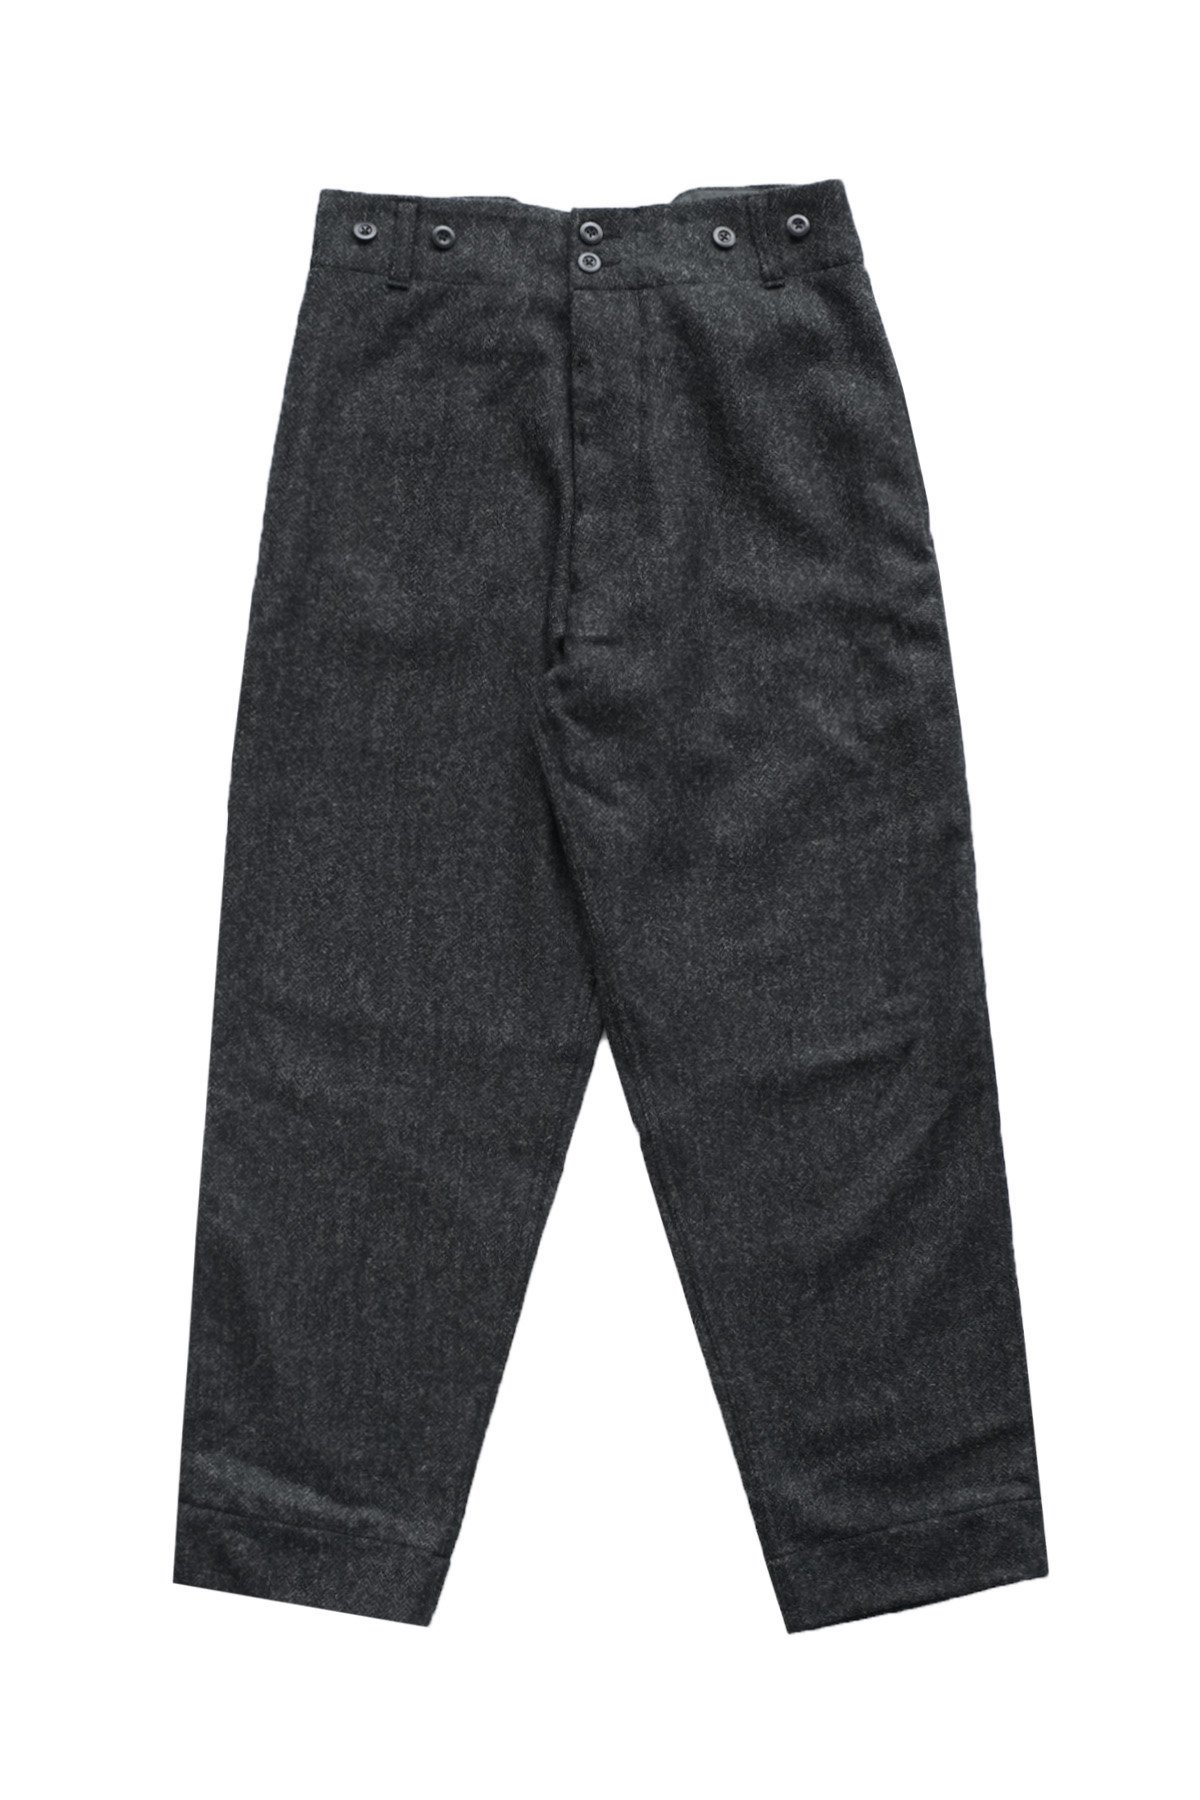 Nigel Cabourn - WOOL FARM PANT HERRINGBONE WOOL CHACOAL GRAY - PRICE 52,800 tax-in